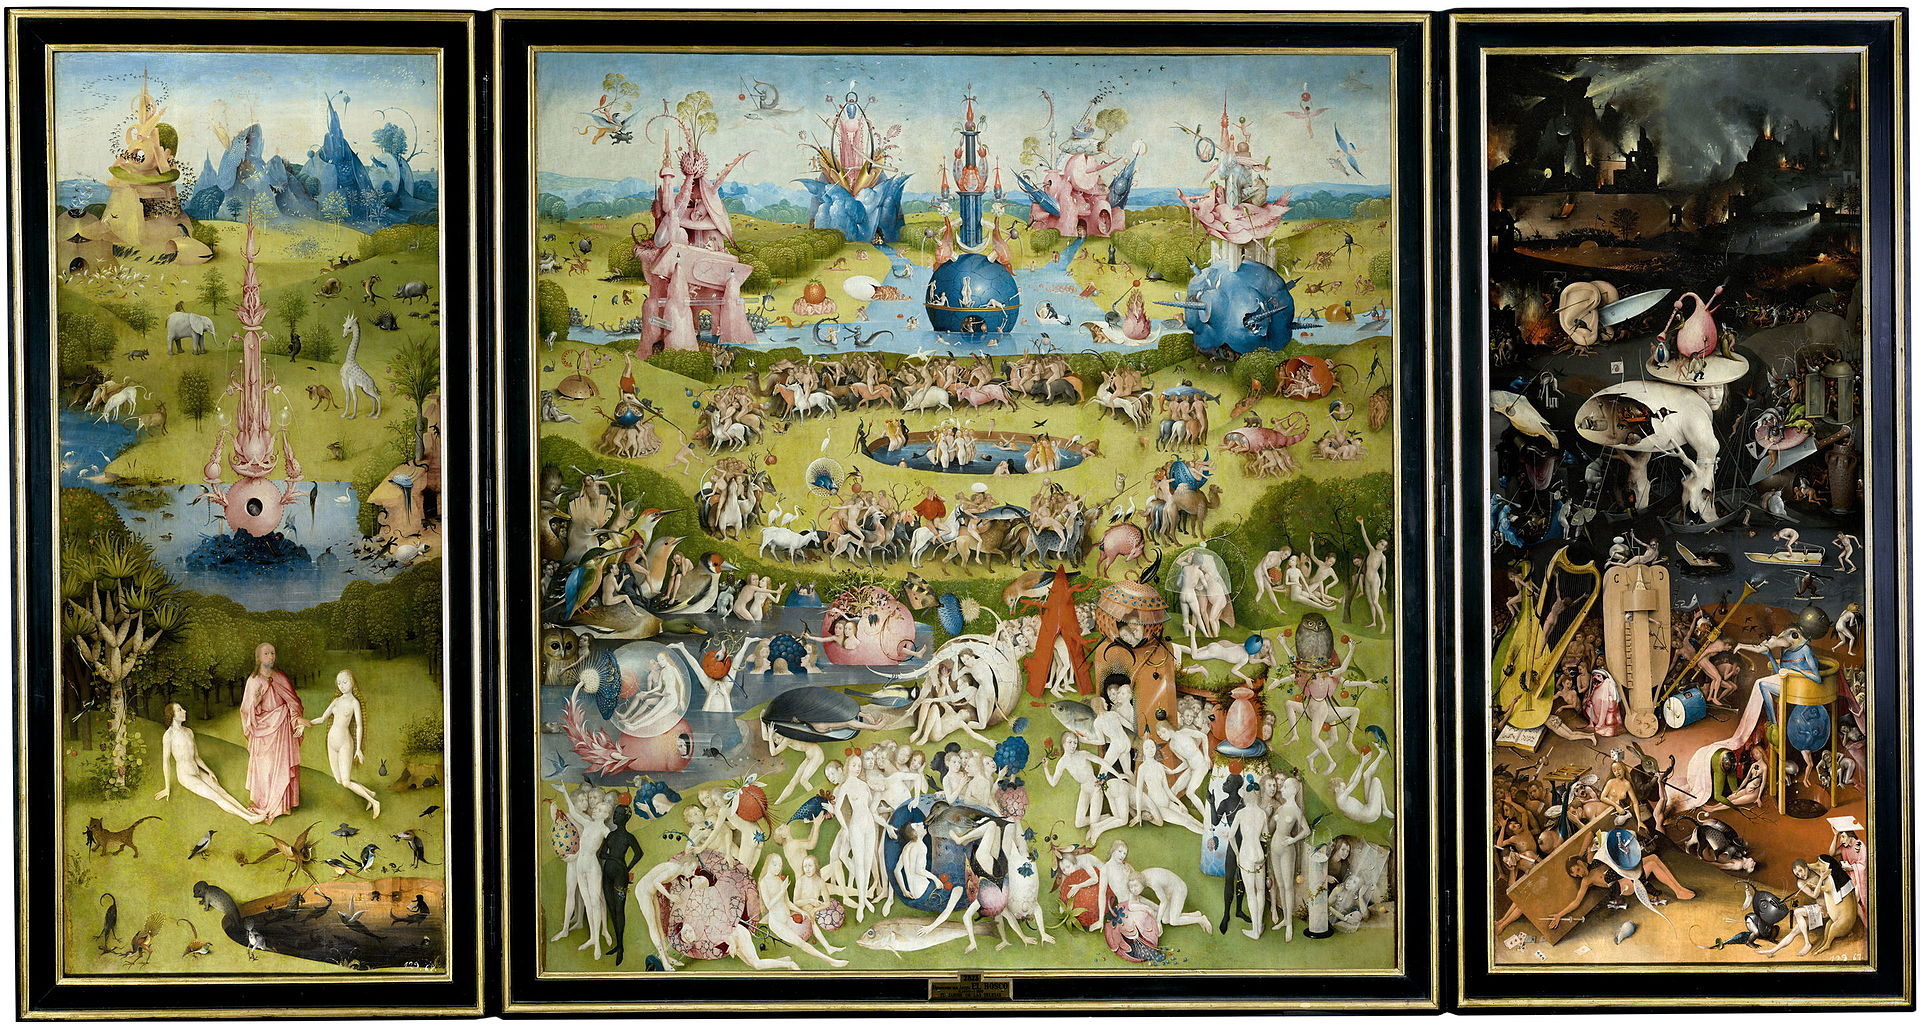 Hieronymus Bosch - Tuin der lusten / The Garden Of Earthly Delights (1480-1490)